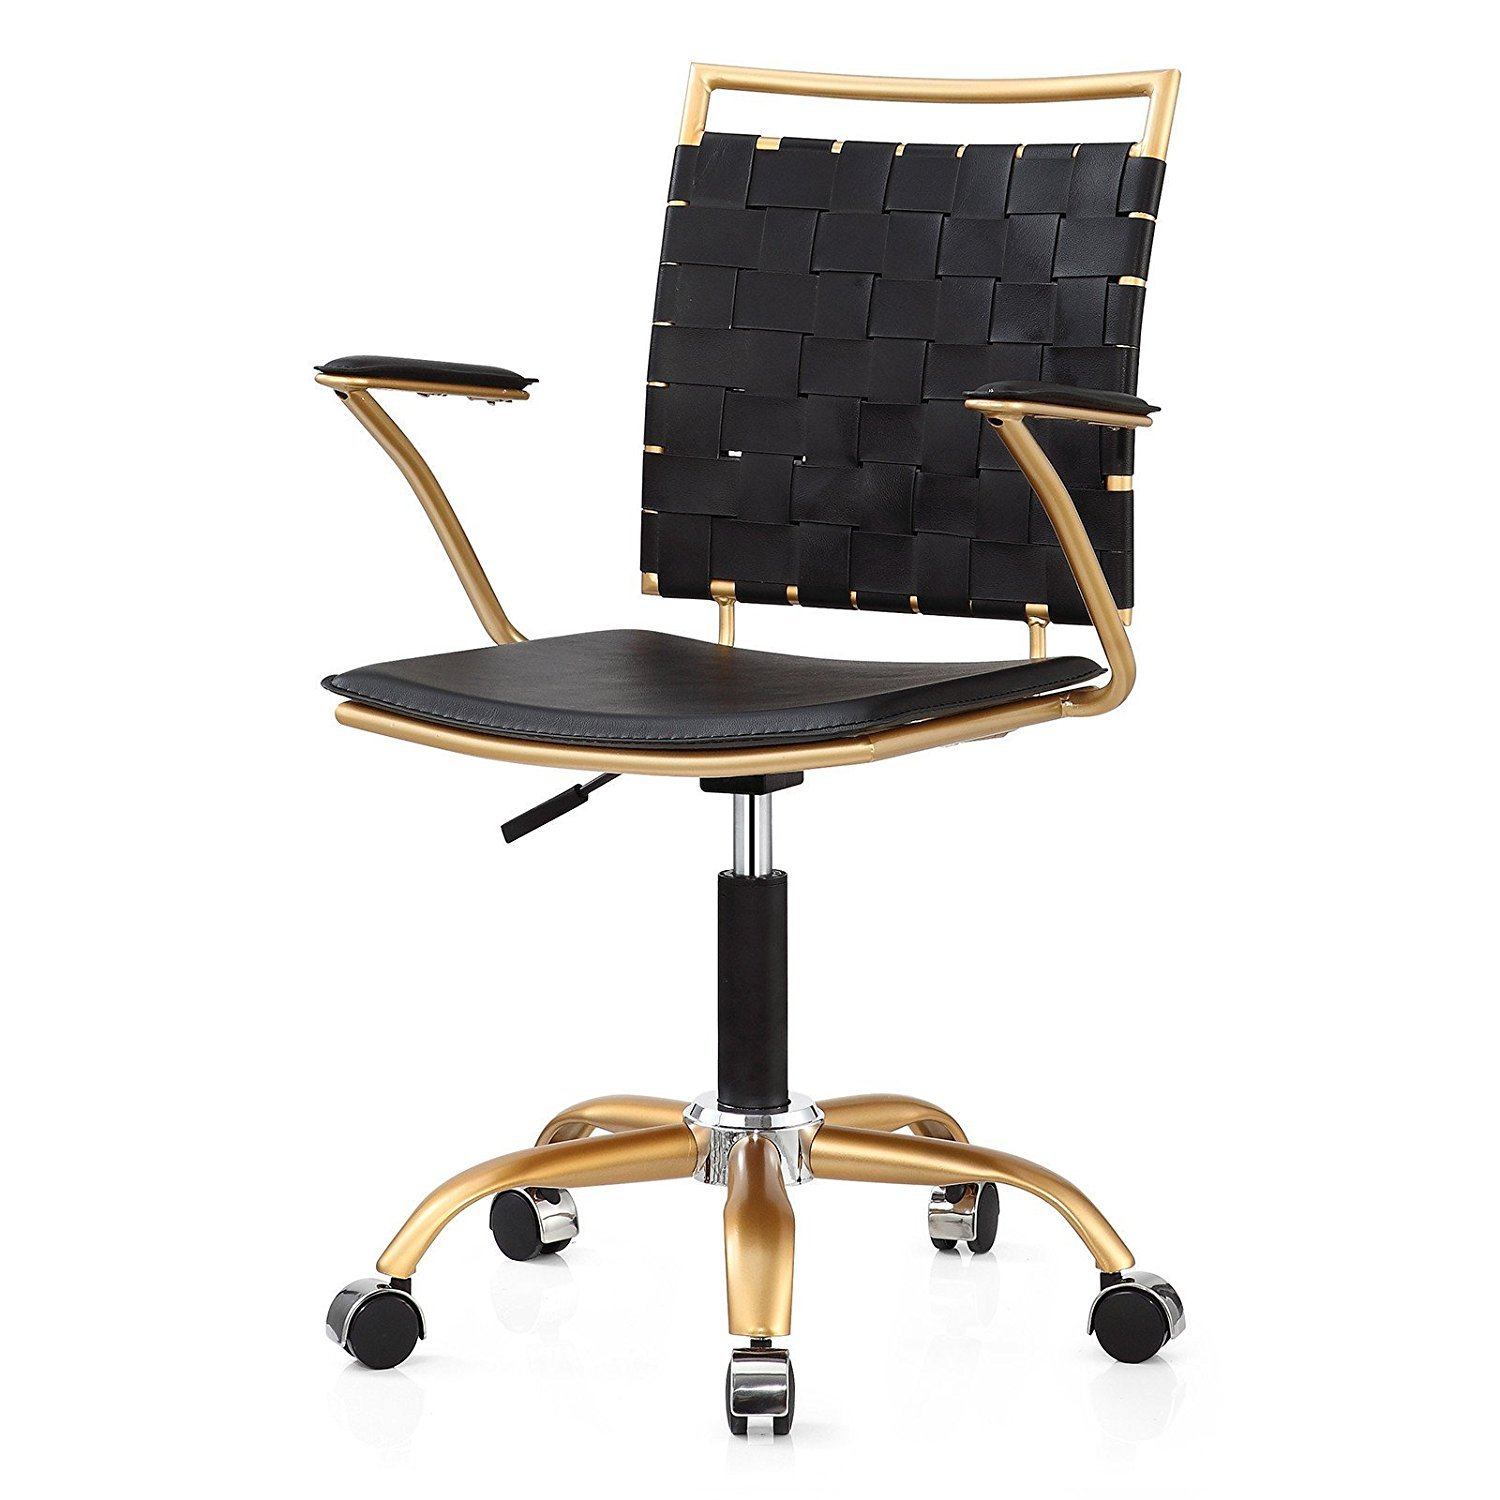 M356 Gold Finish Modern Office Chair Home Furniture Design